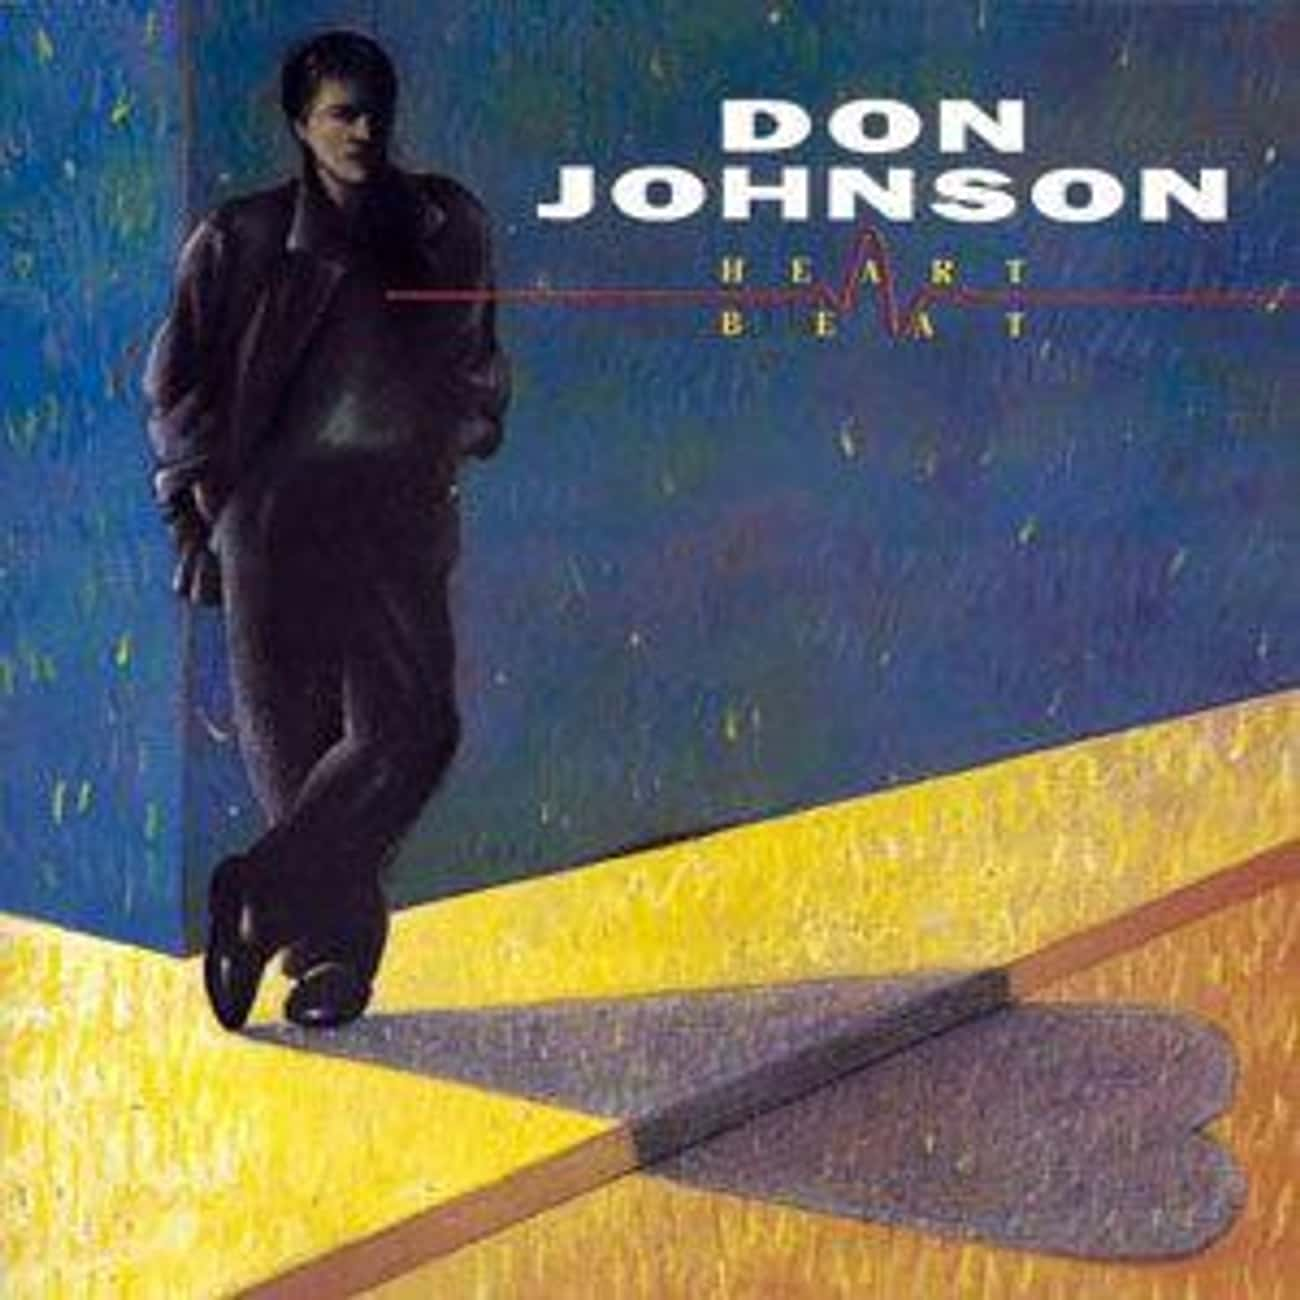 Don Johnson: 'Heartbeat' is listed (or ranked) 3 on the list Which '80s Actor Or Actress Had The Most Impressive Album?